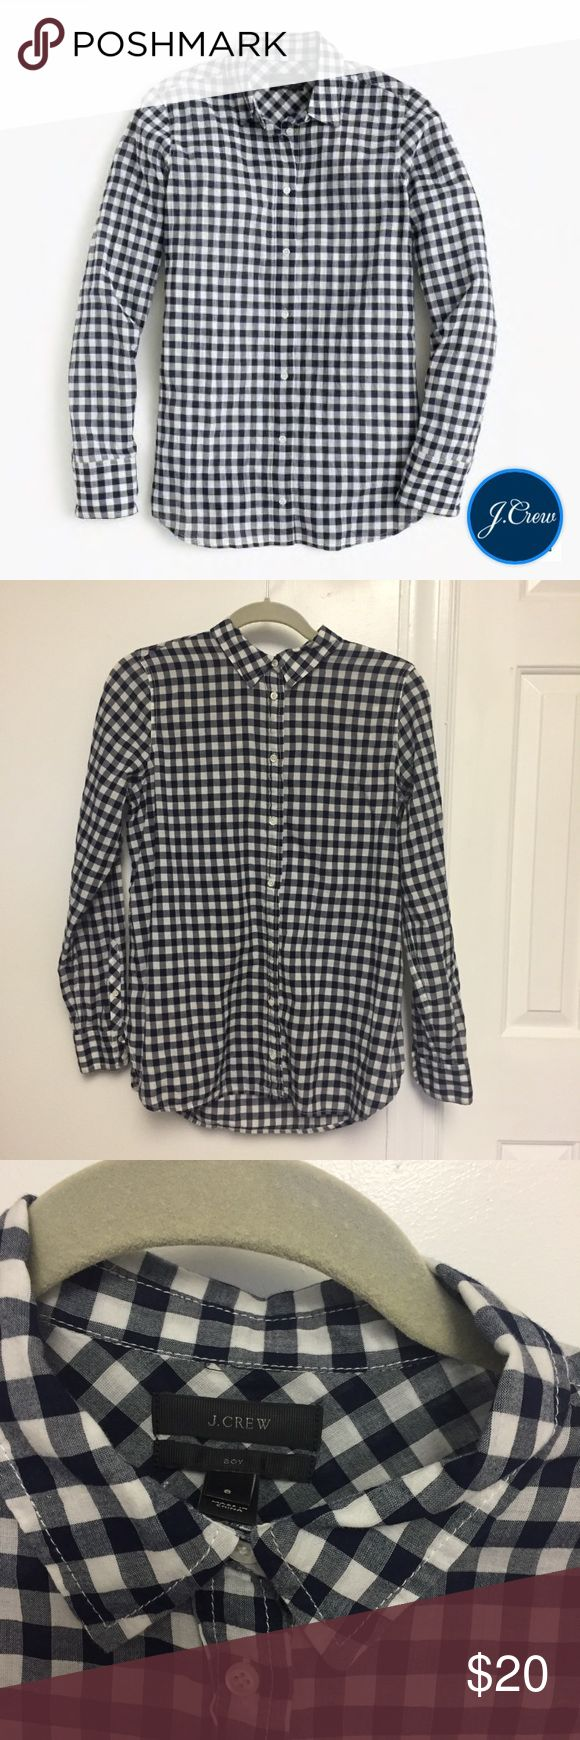 "J. Crew Relaxed Boy Shirt in Crinkle Gingham 8 Excellent pre-owned condition, classic J. Crew Boy Shirt in Crinkle Gingham in navy and white. Size 8. Measurements: pit to pit: 20.5"" shoulder to hem: 27"" sleeve length: 24"" J. Crew Tops Button Down Shirts"